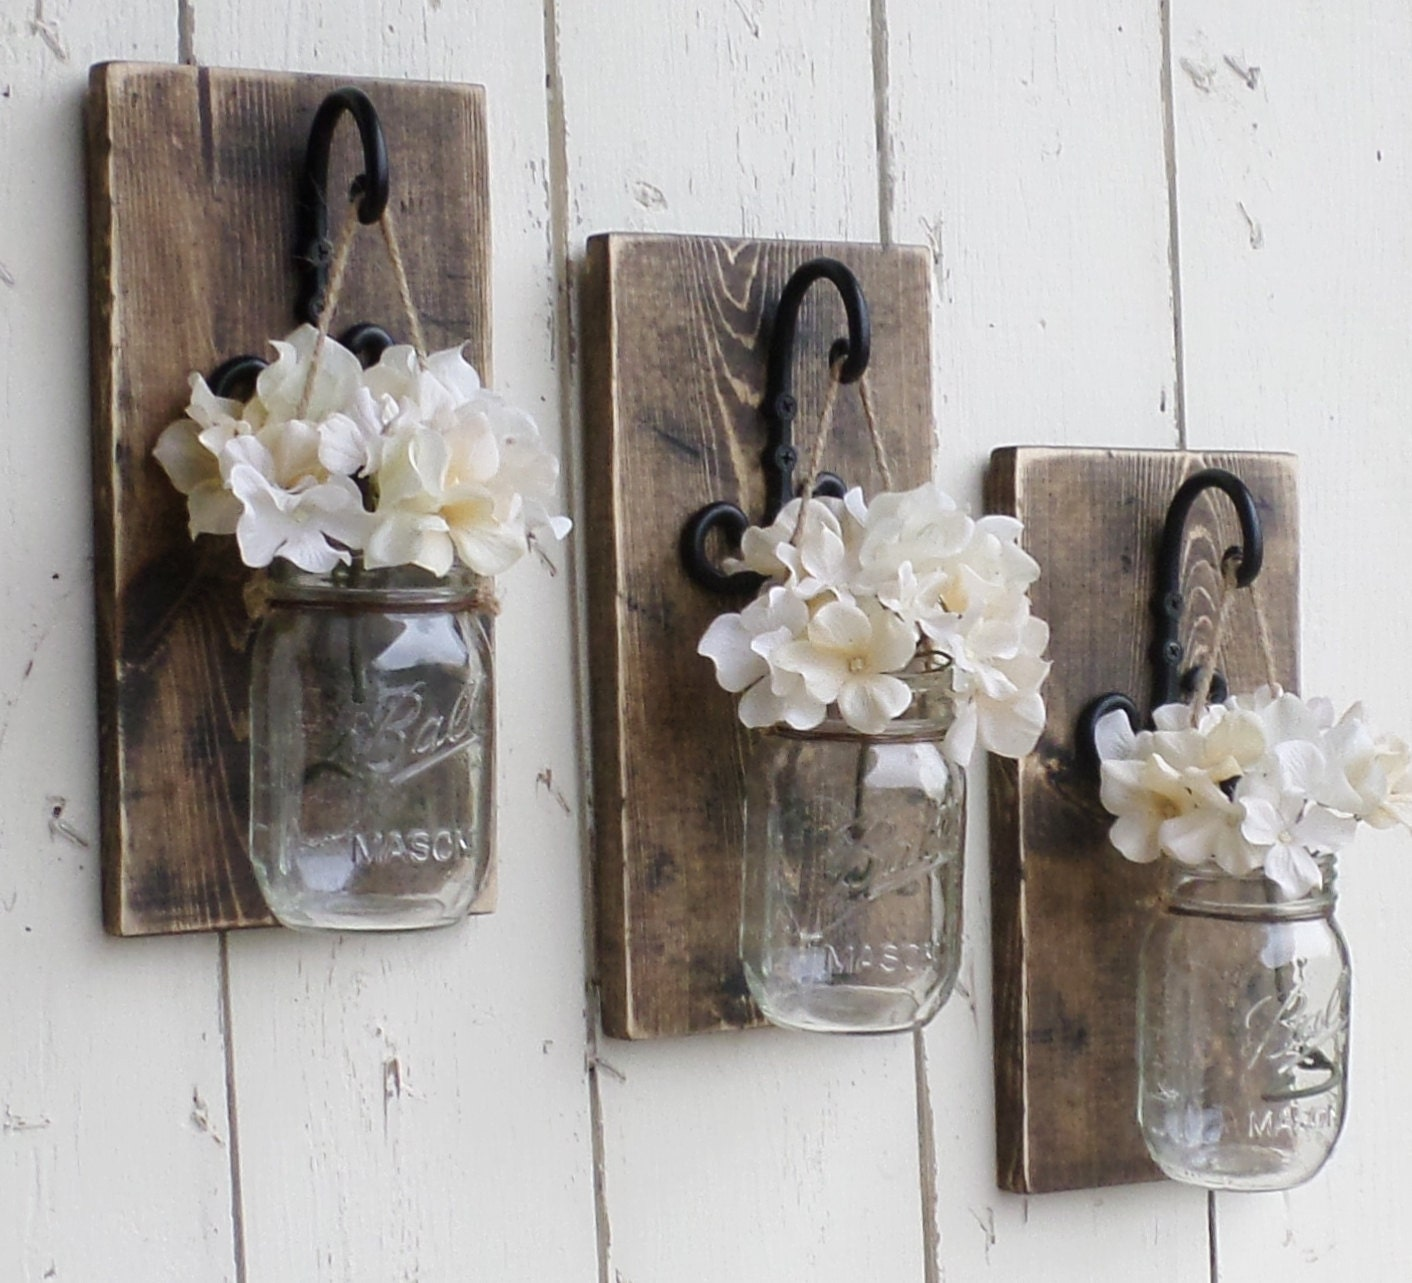 New Rustic Farmhouse Wood Wall Decor 3 By